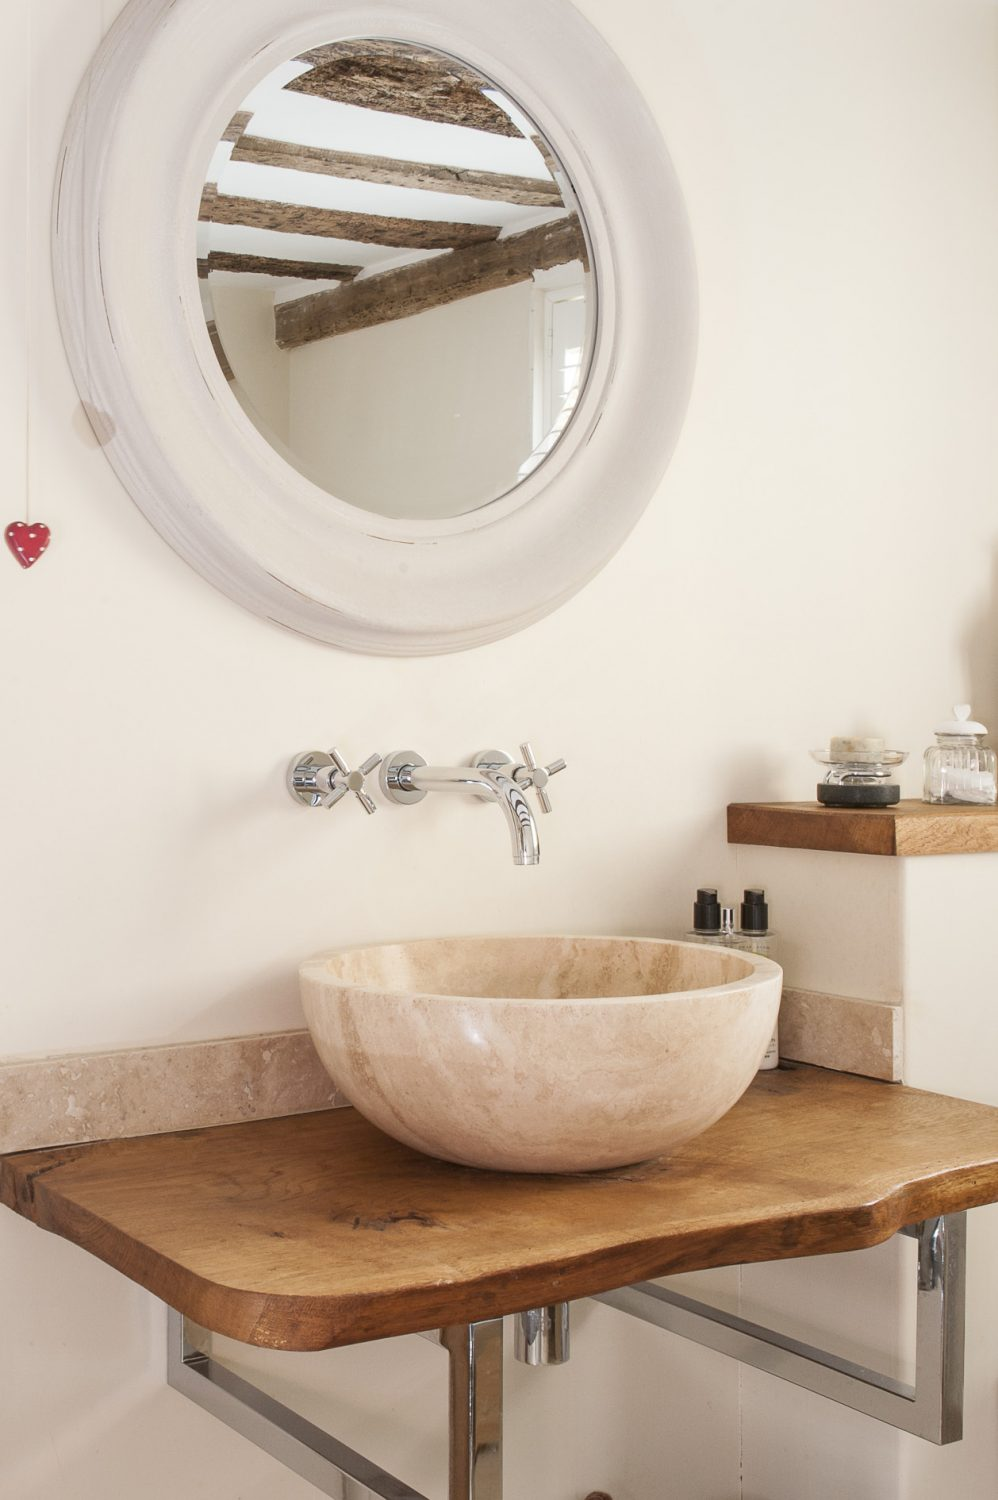 A stone bowl basin is supported by a polished oak table with chrome legs, made by Chris